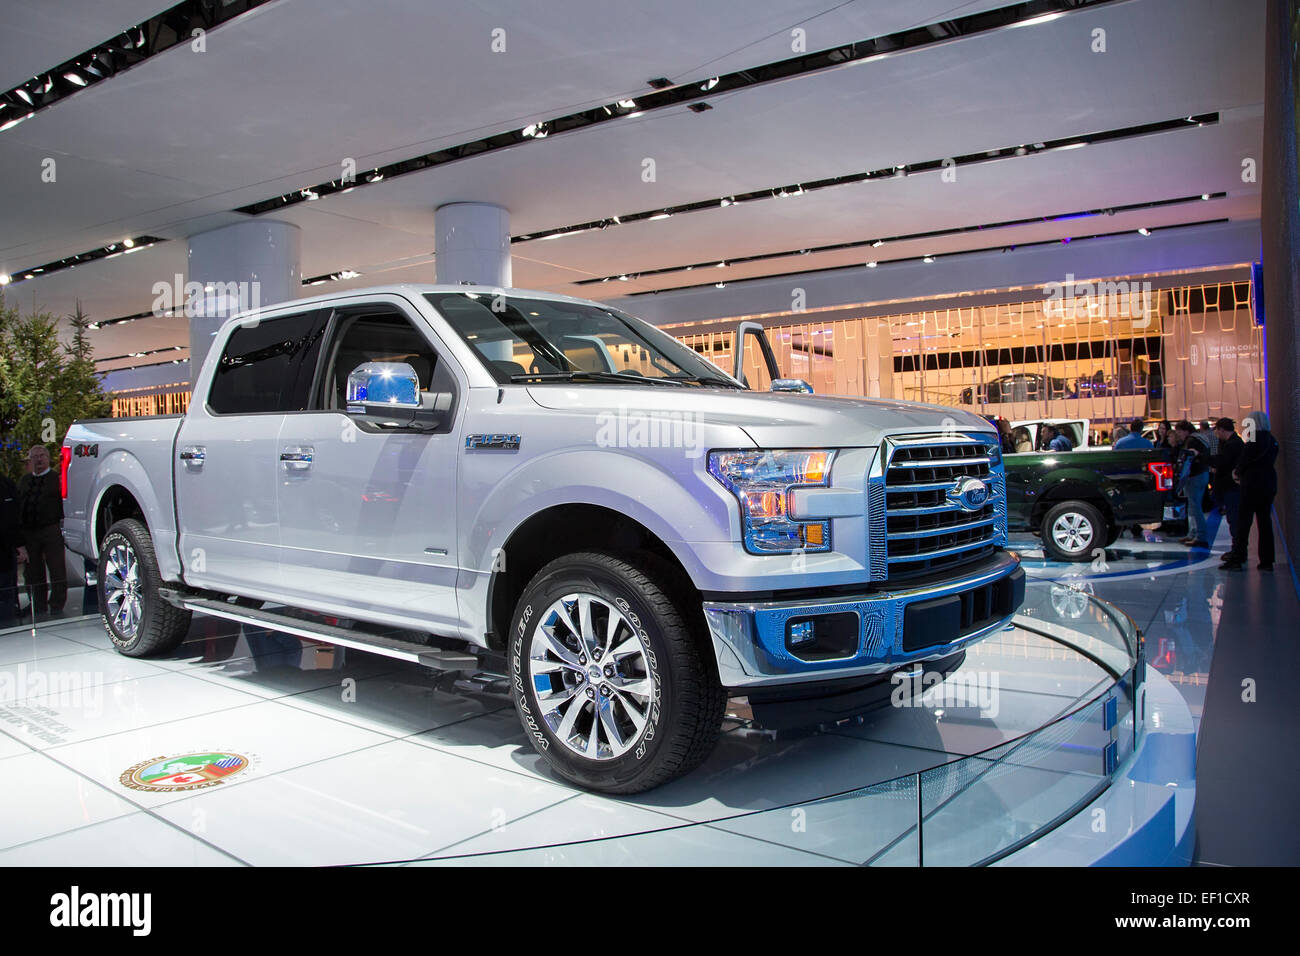 Detroit, Michigan - The Ford F-150 aluminum body pickup truck on display at the North American International Auto - Stock Image